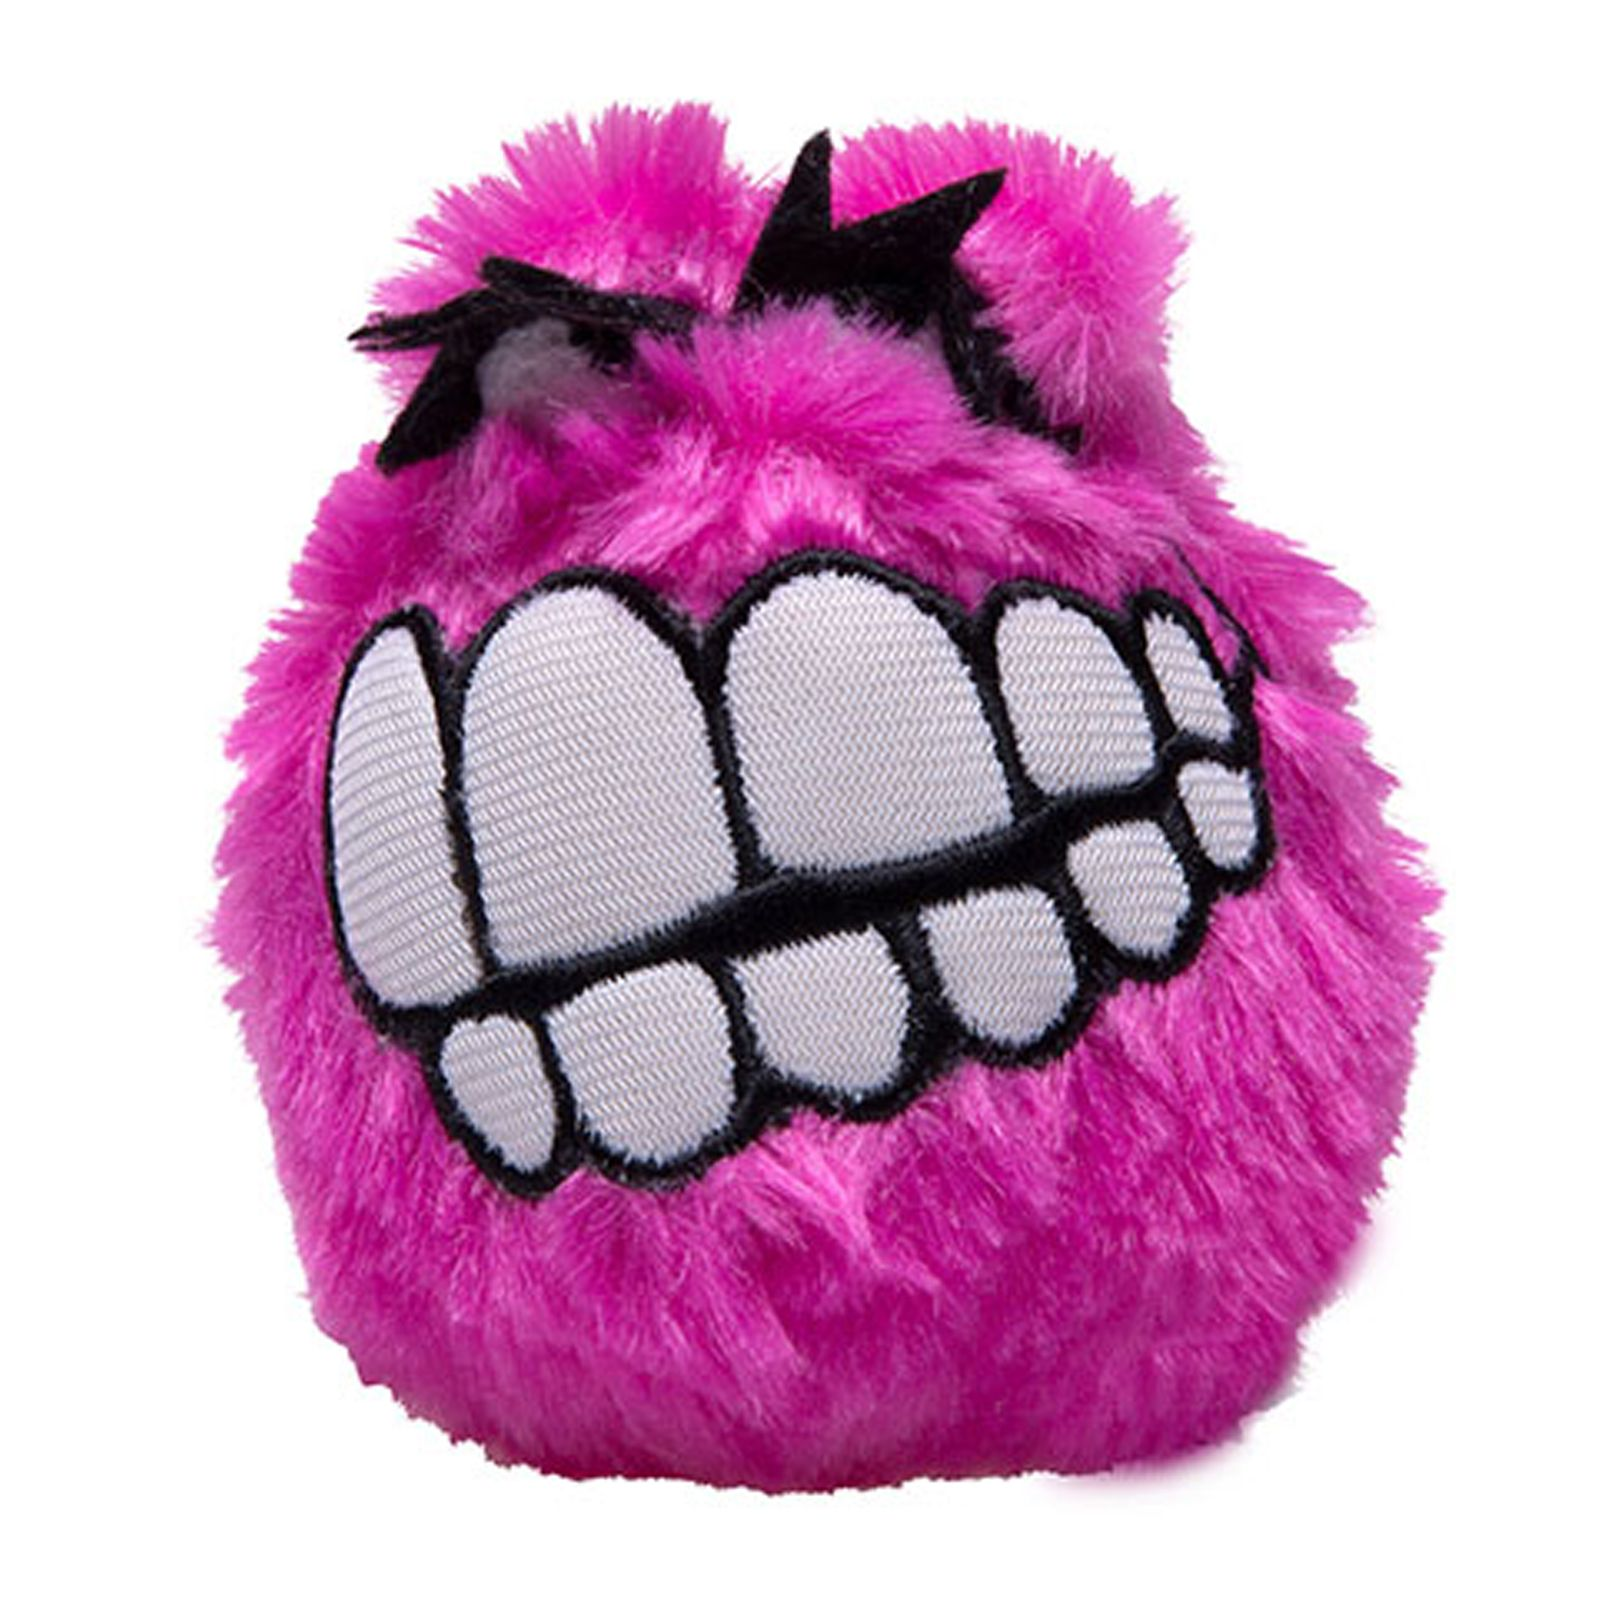 Rogz fluffy grinz will be your dogs favourite toy and durable aswell. Find it at www.zooco-sa.com